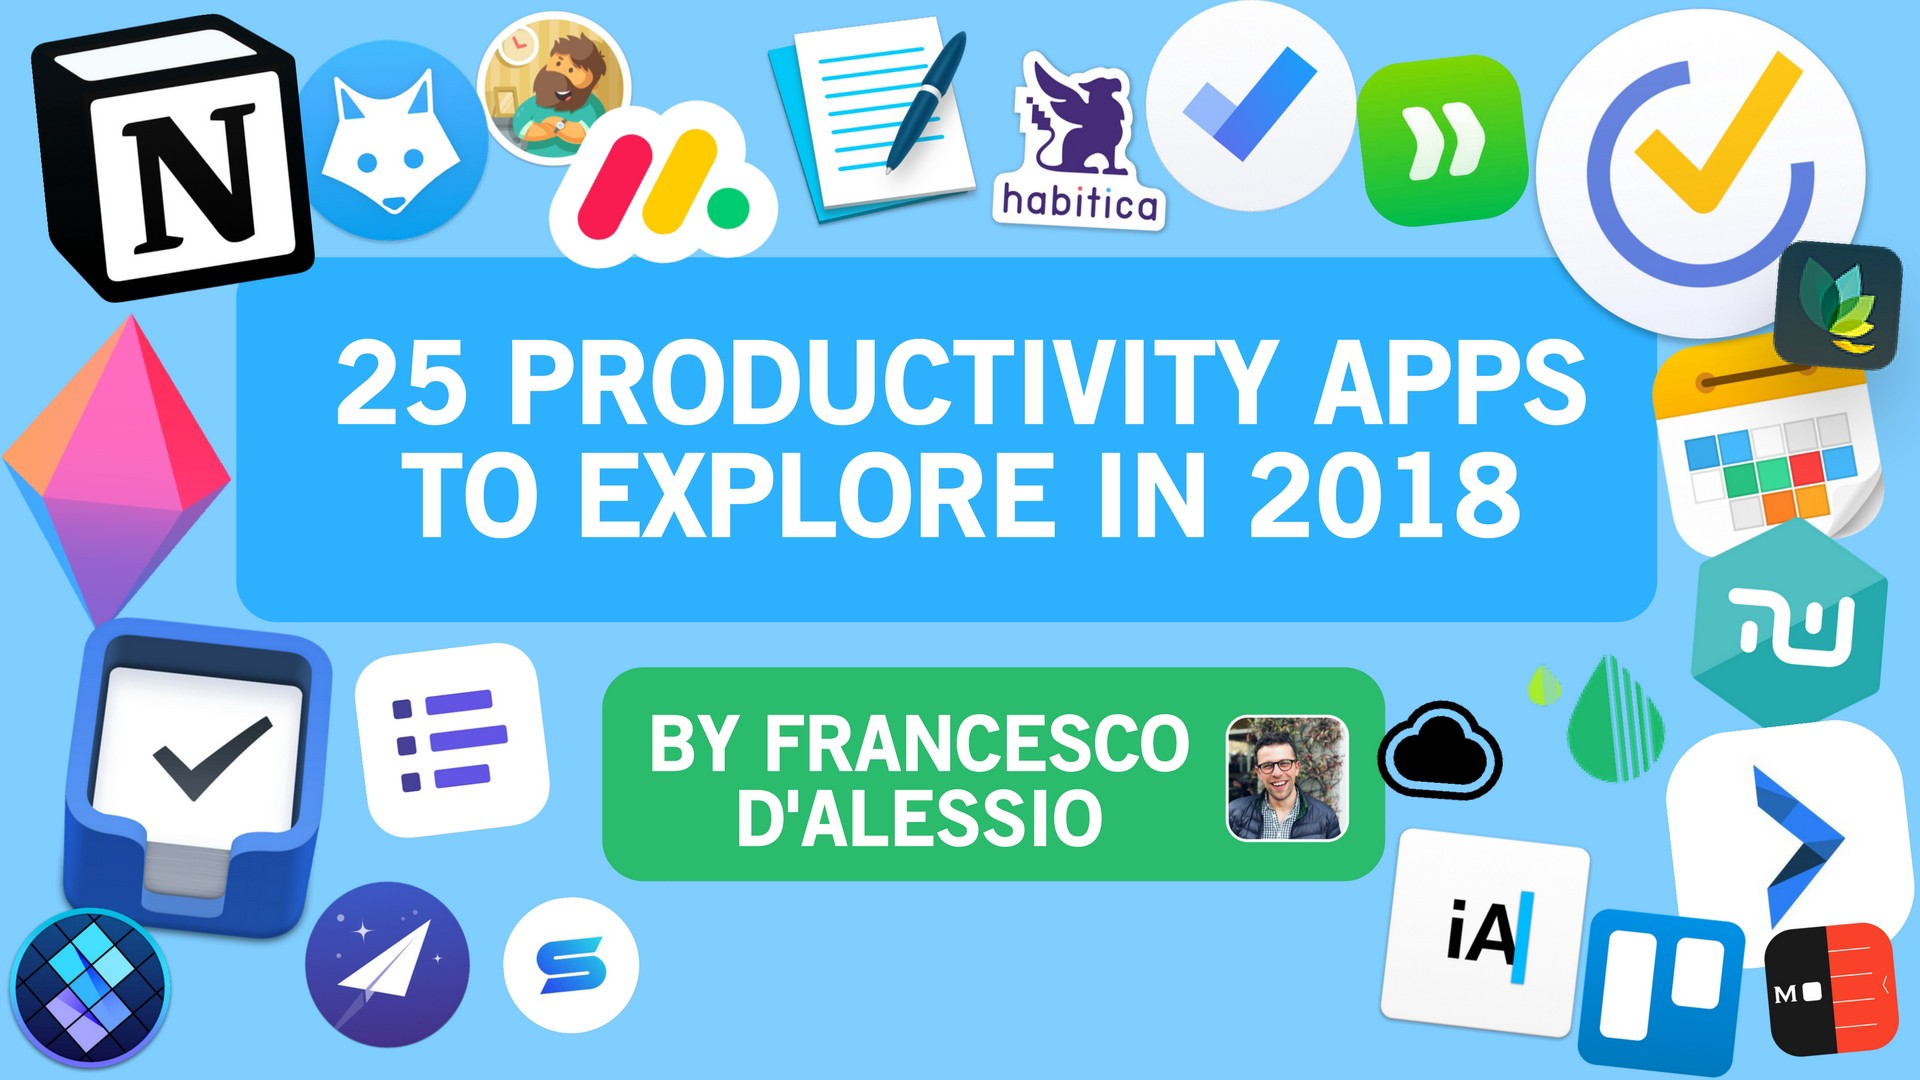 25 Productivity Apps to Explore in 2018 - Mission org - Medium